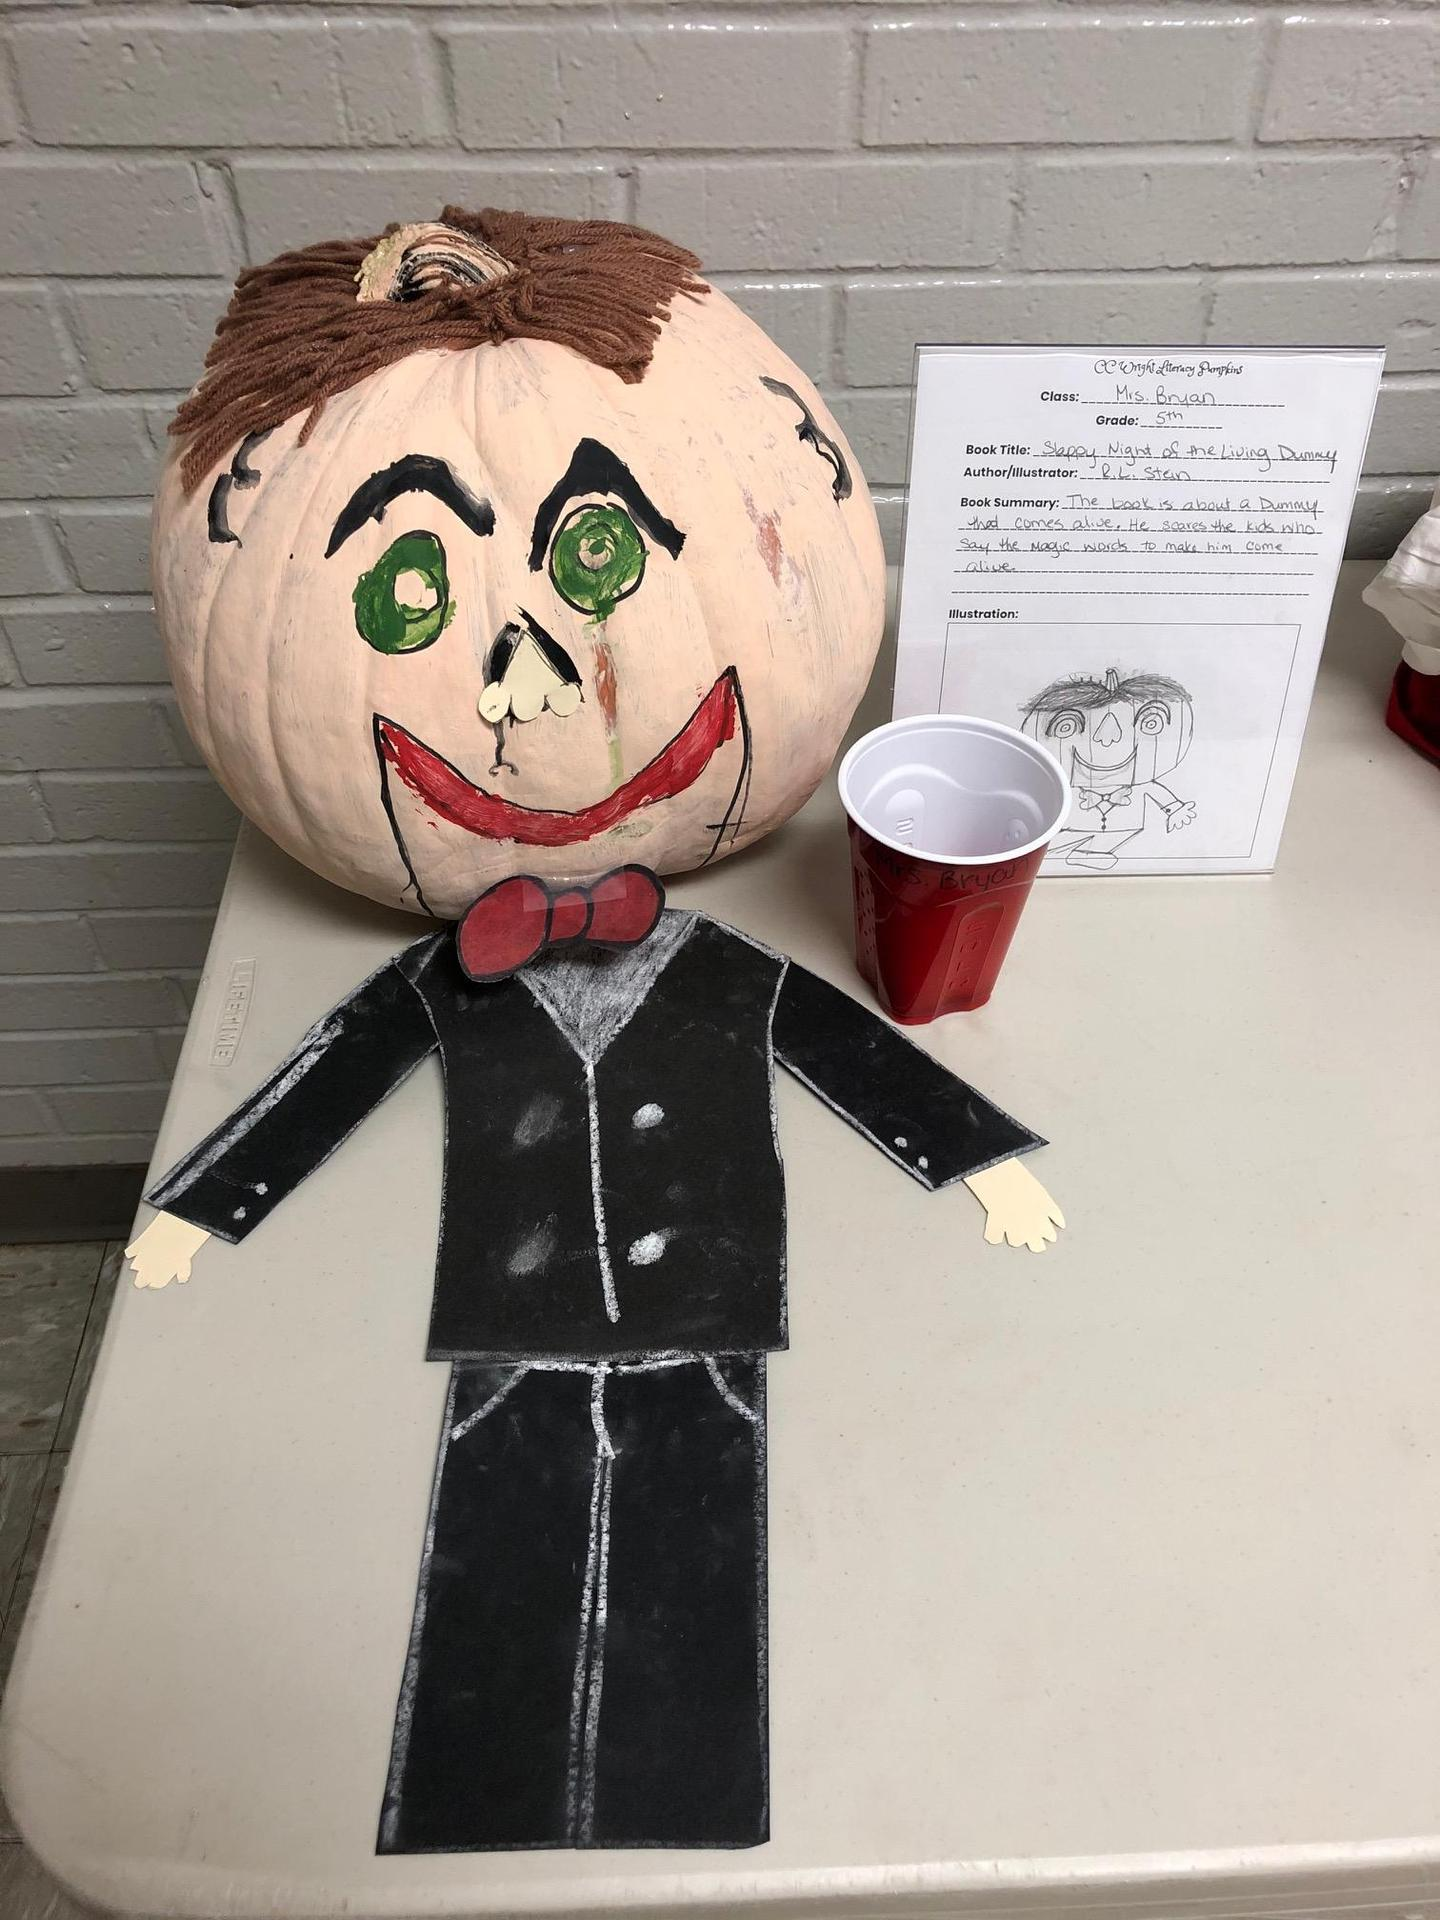 Goosebumps pumpkin